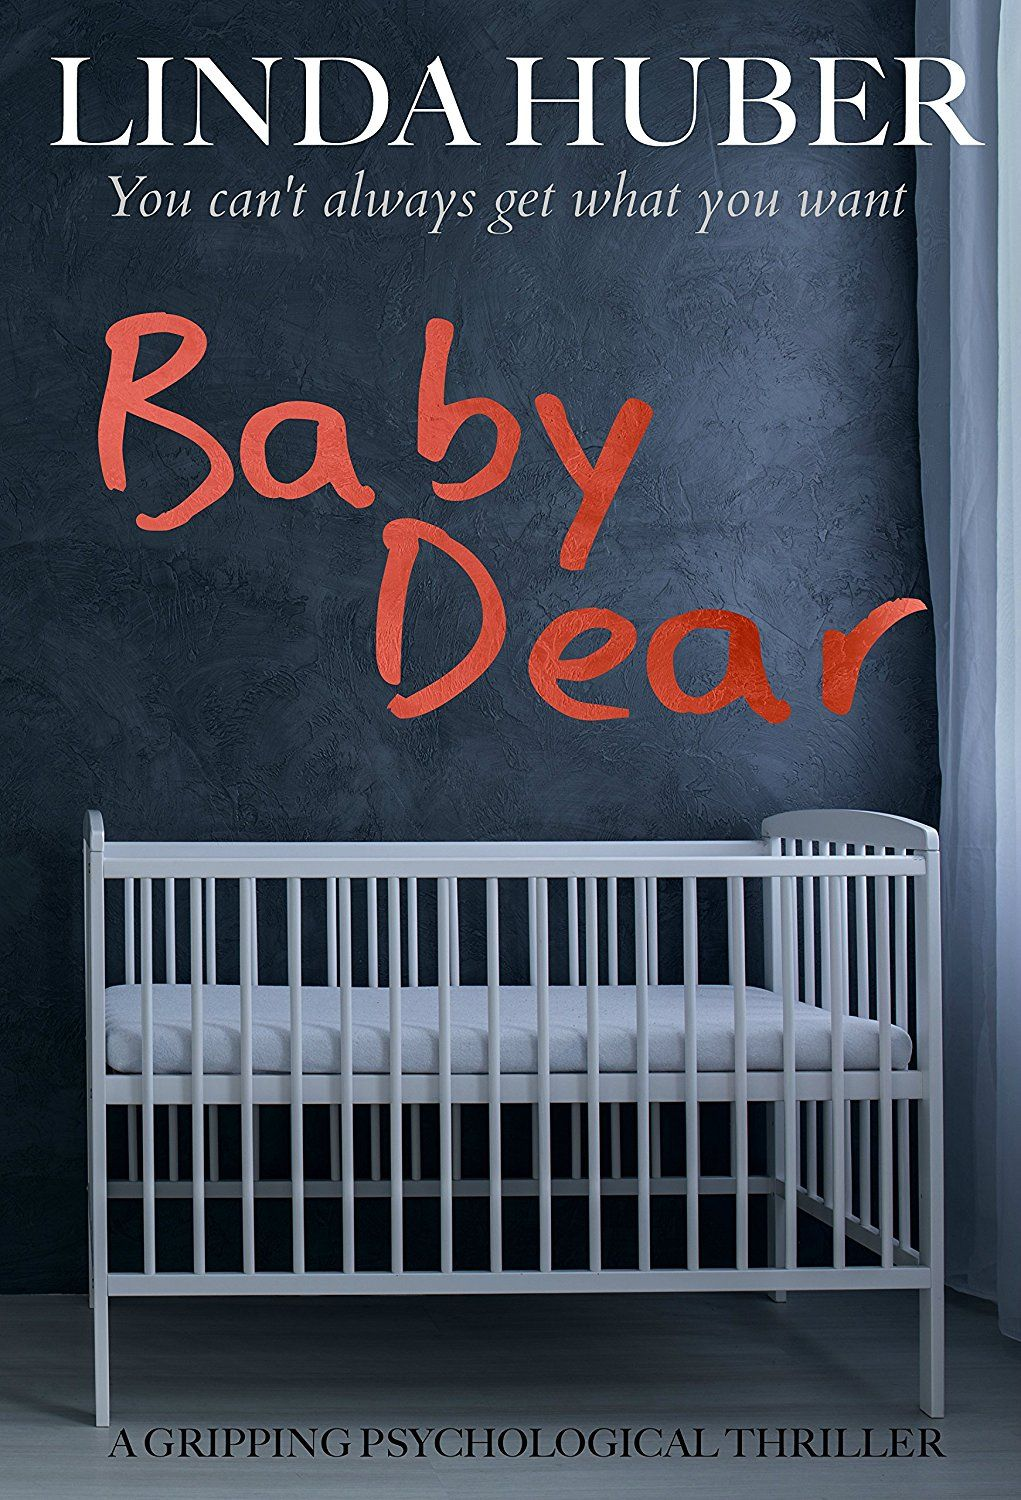 Baby Dear: a gripping psychological thriller | Books I want